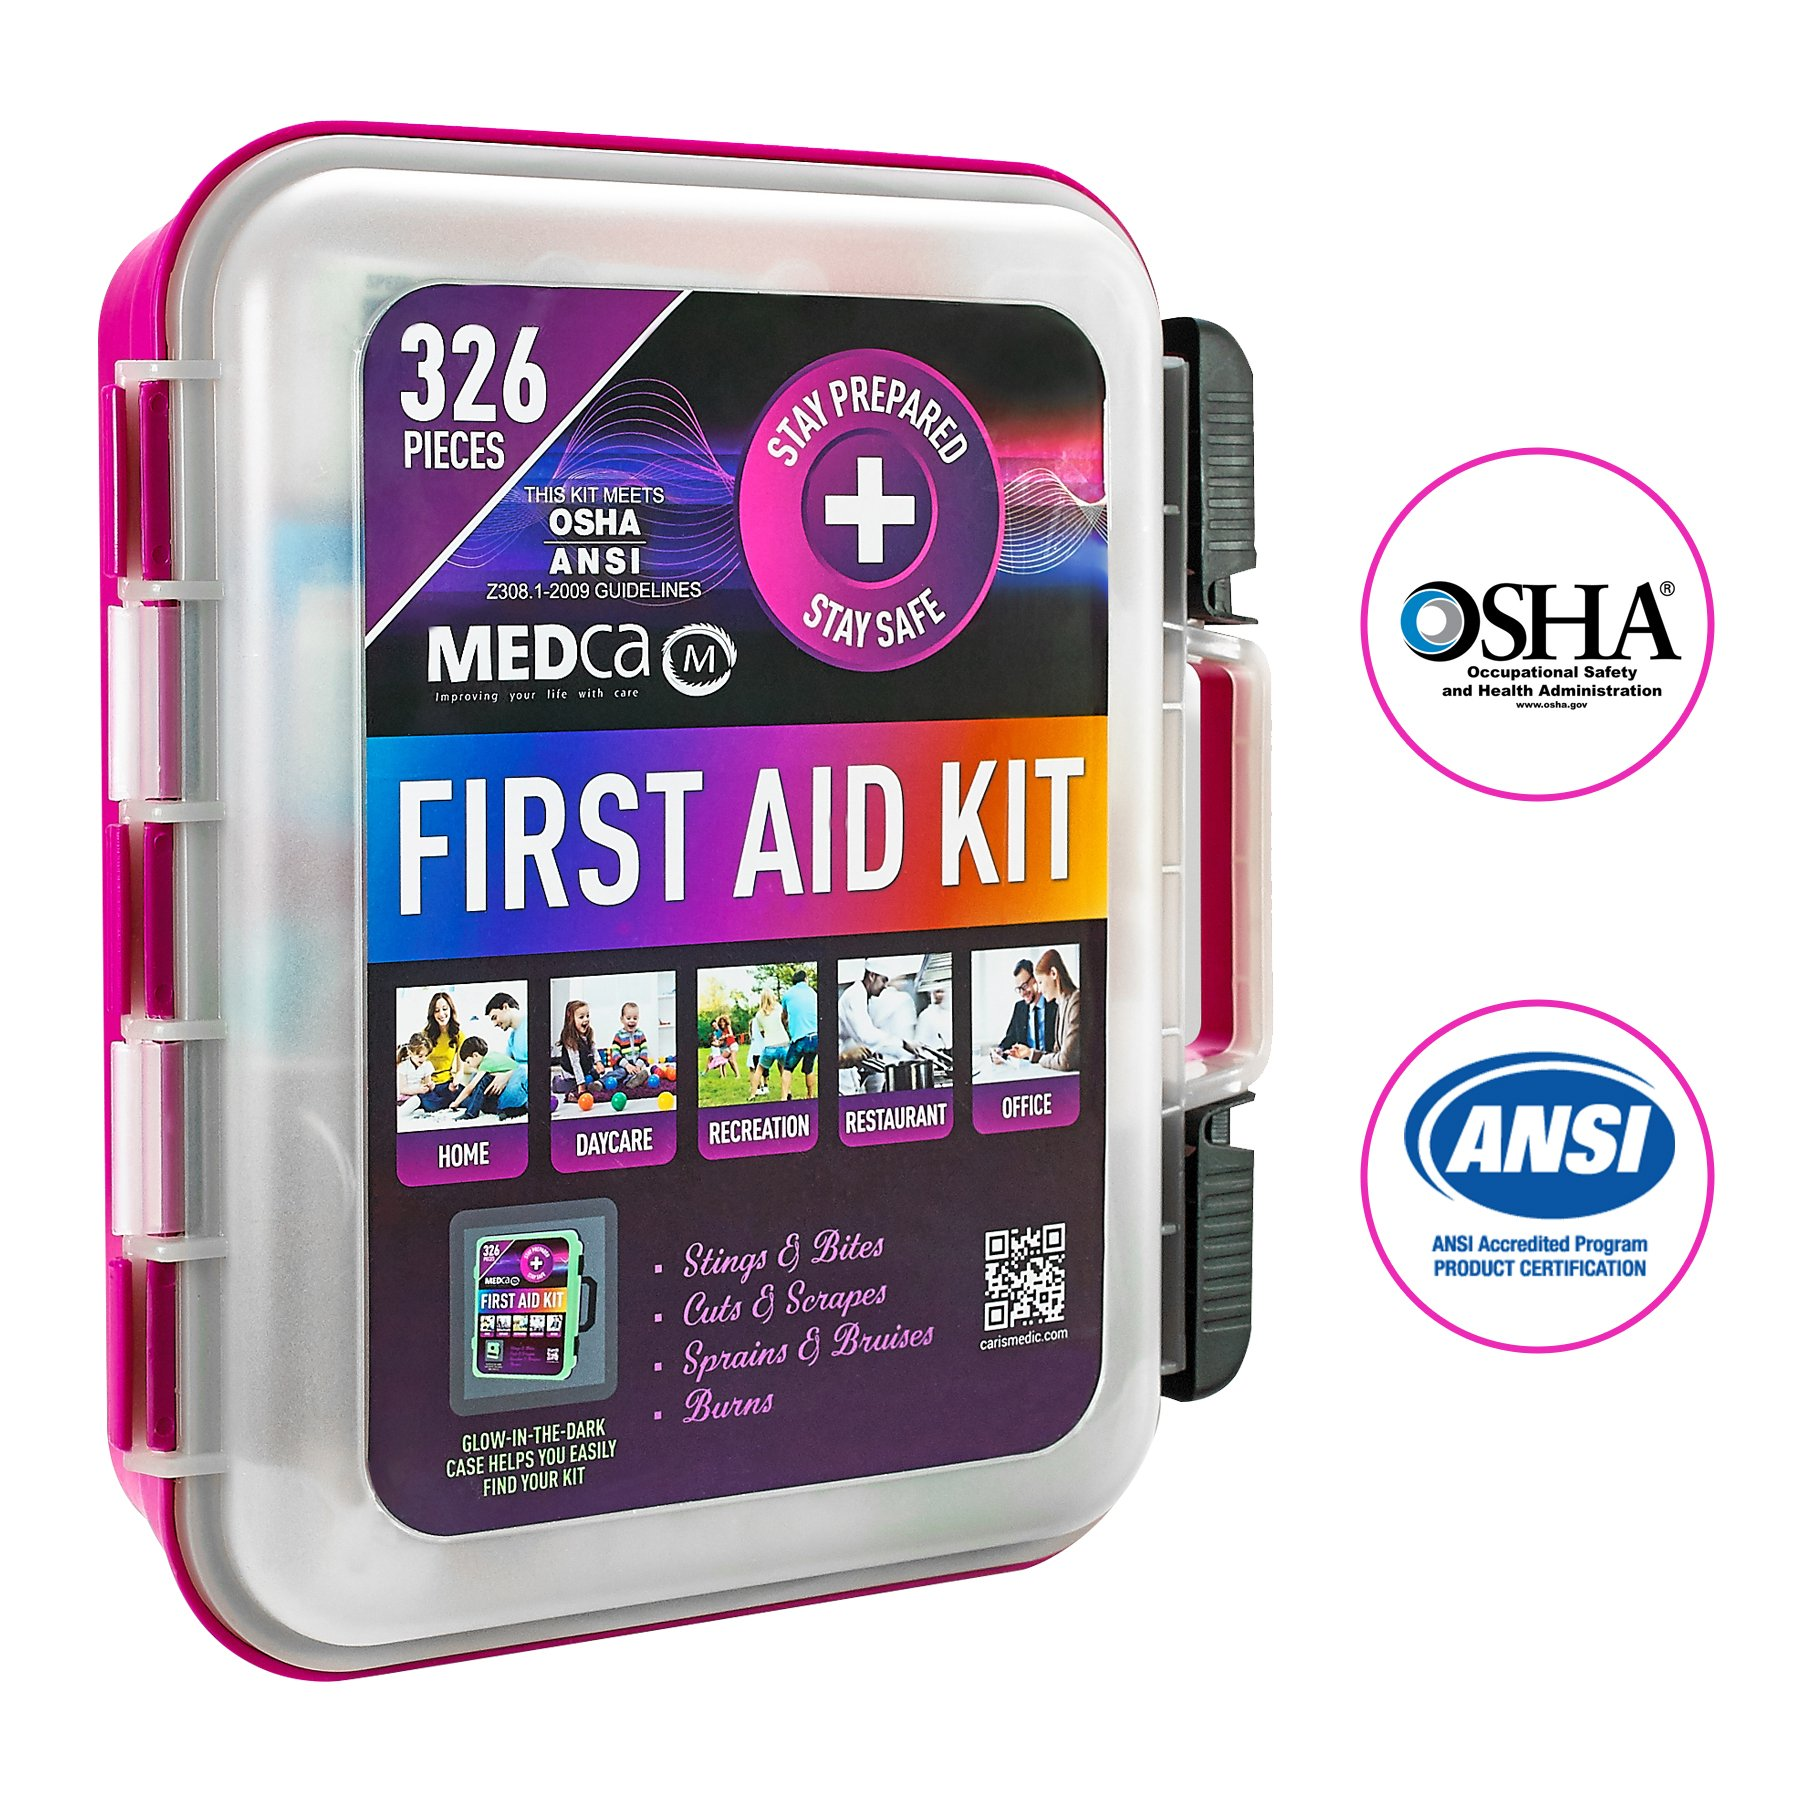 First Aid Kit - Emergency First Aid Kit and Medical Kit Exceeds ANSI Z308.1-2009 OSHA Standards, Hard Case, Wall Mount & Glows in The Dark for Offices, Home, Schools, Daycare, Construction Sites by MEDca